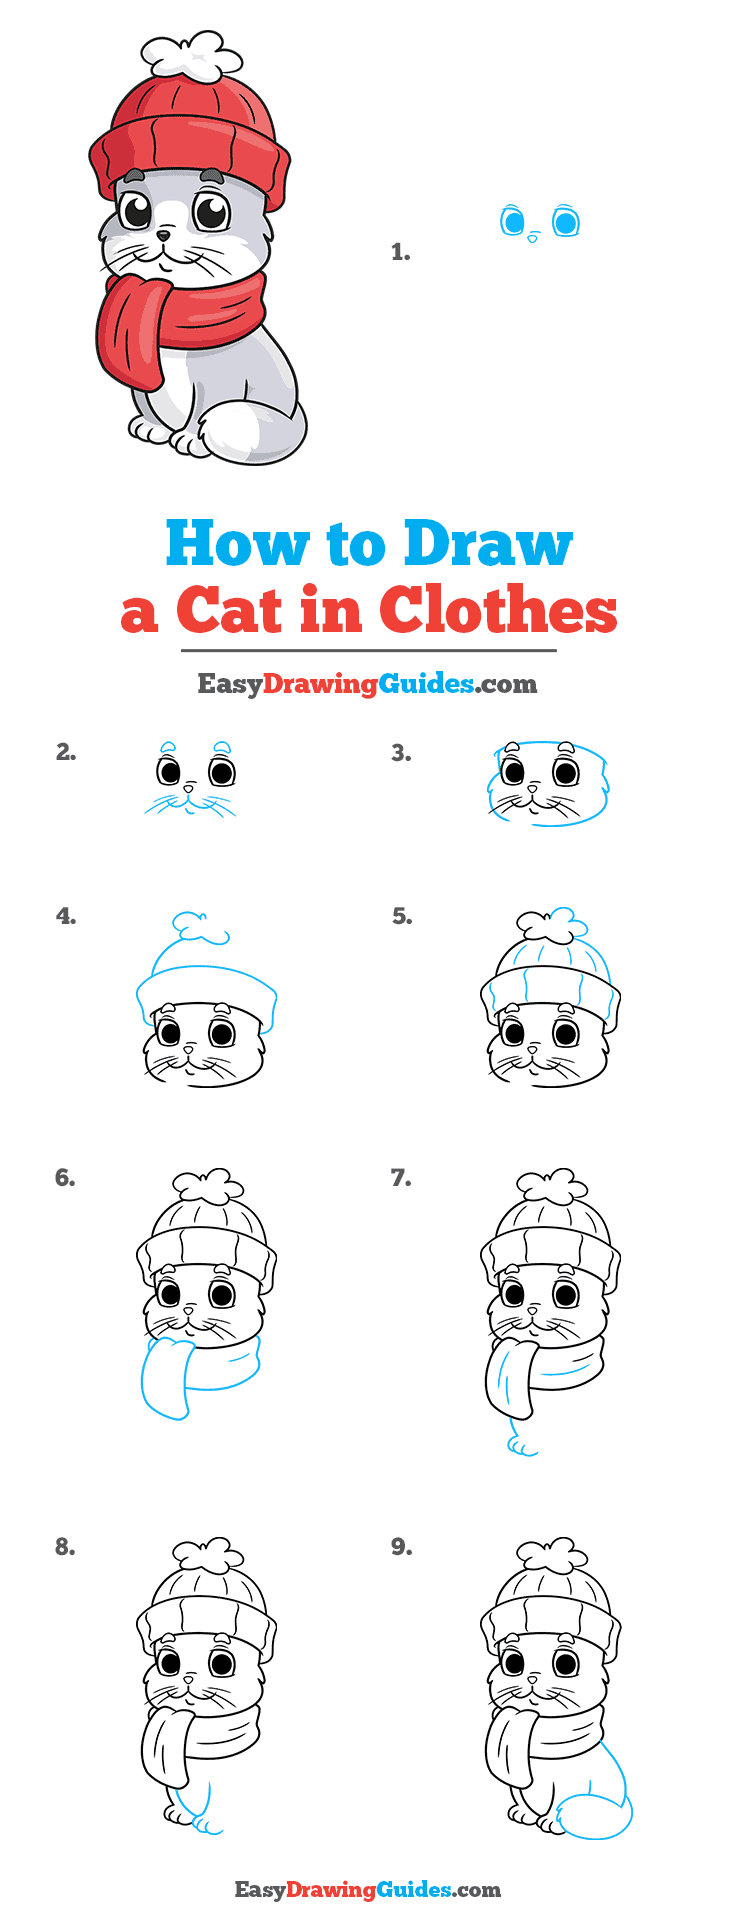 How to Draw Cat in Clothes